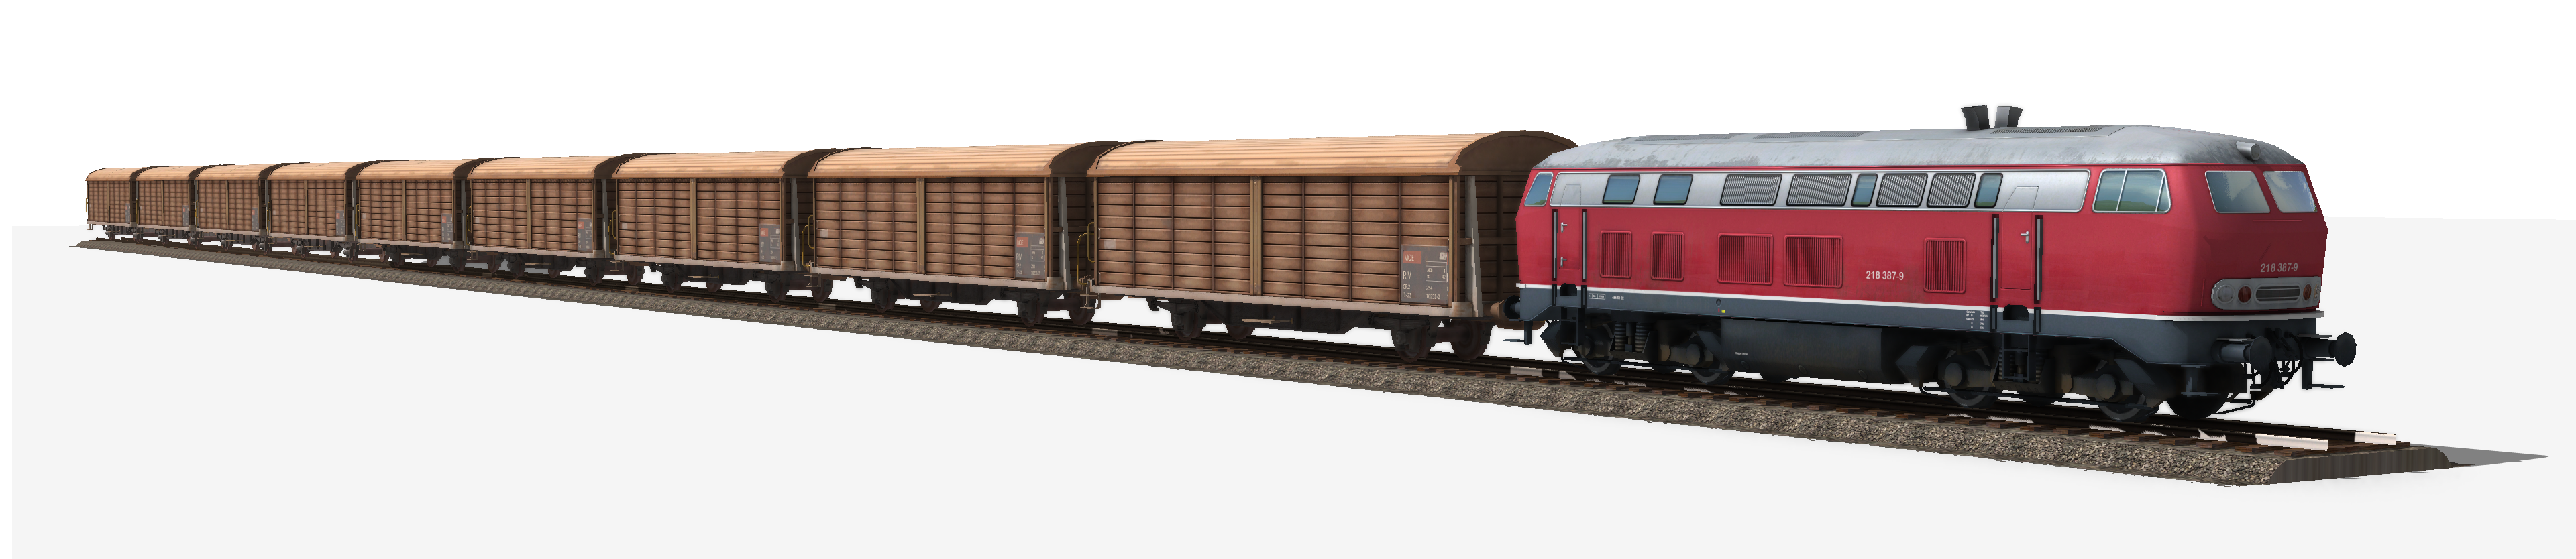 Png Image Of Train - Png Image Of Train Hdpng.com 3840, Transparent background PNG HD thumbnail